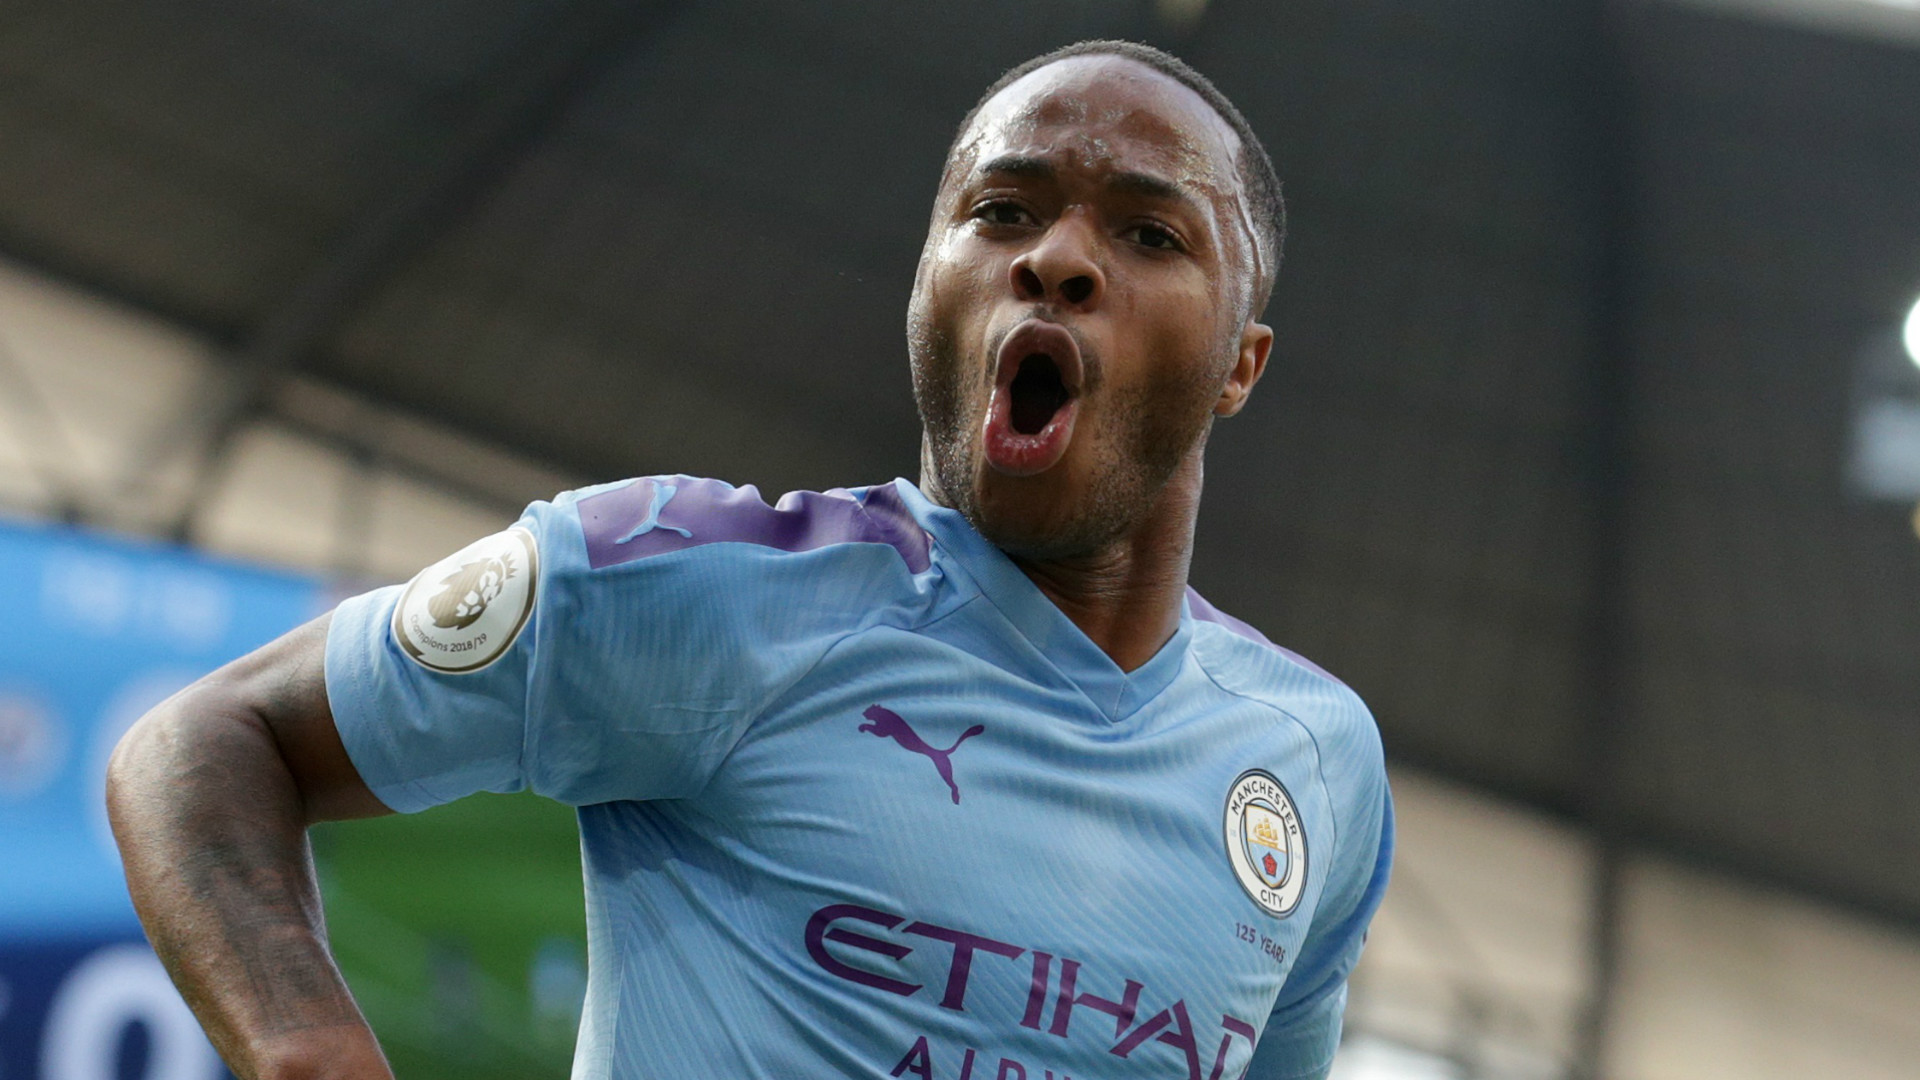 Photo of Queen Elizabeth honours Man City's Sterling for racial equality fight